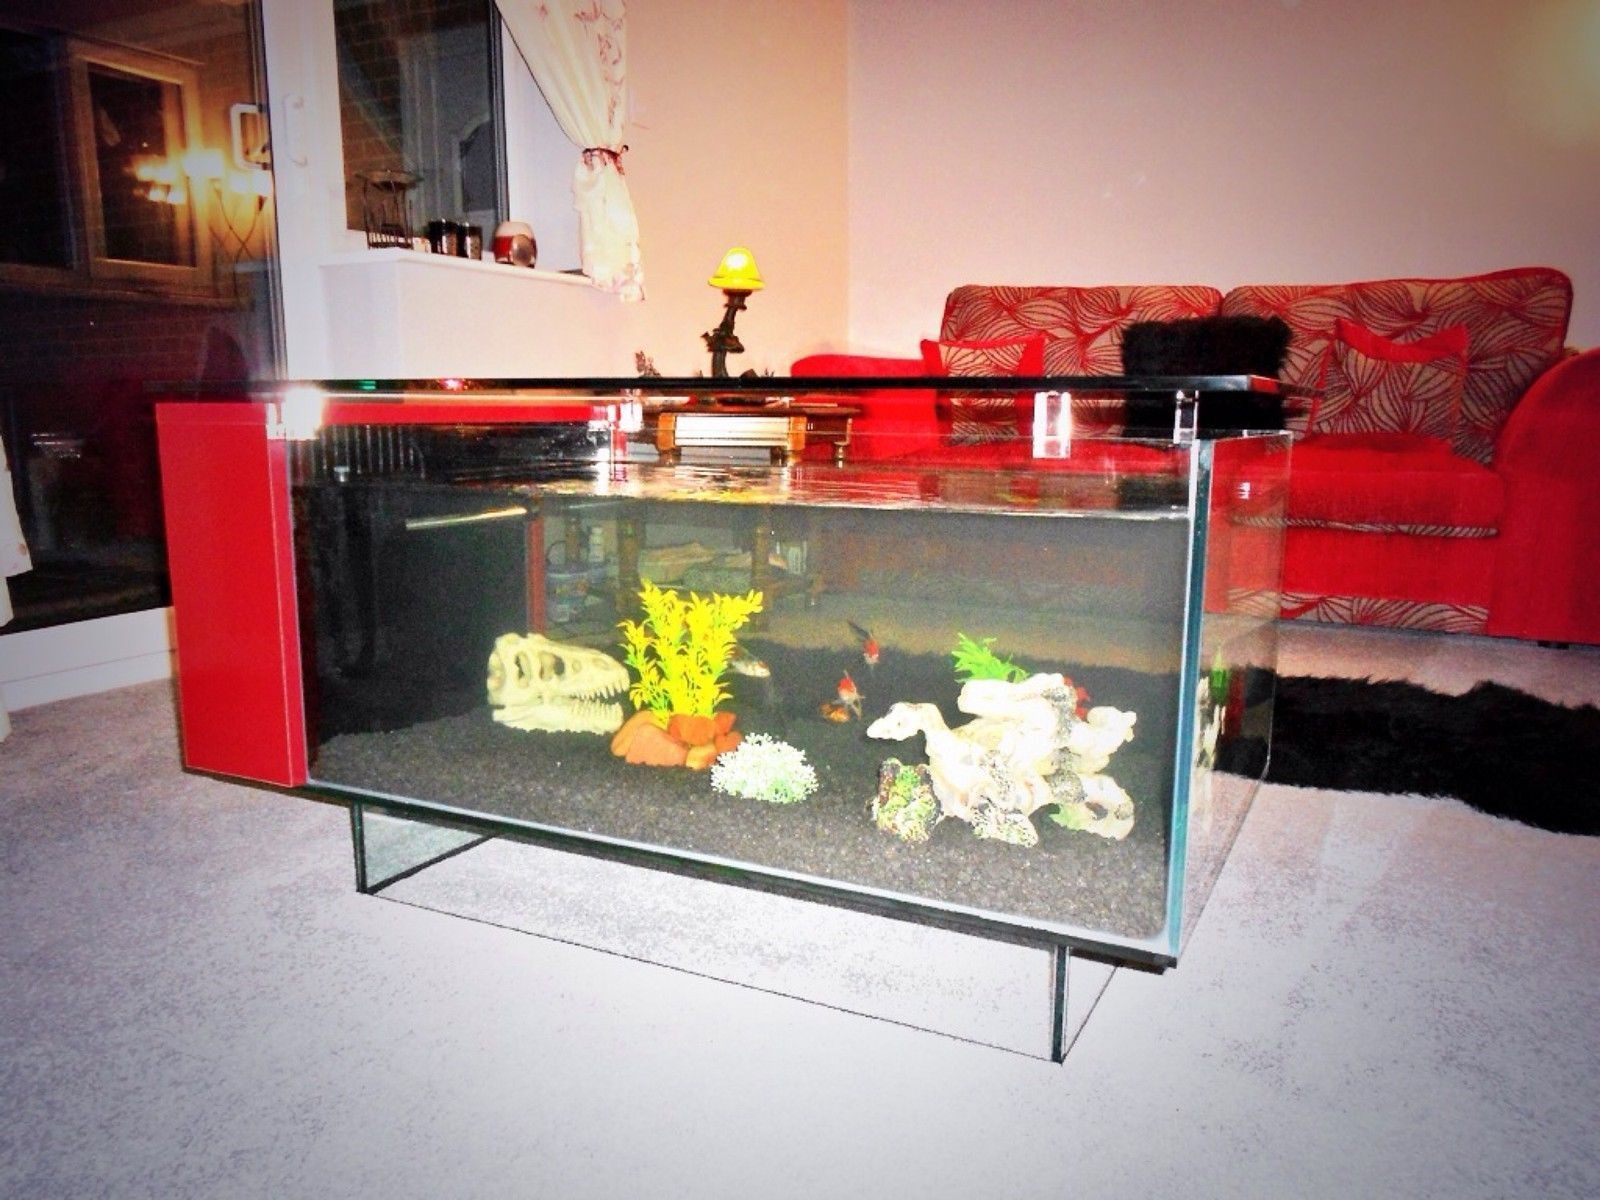 Diy 125 Gallon Aquarium Stand 55 Gallon Fish Tank Stand Plans Diy 10 Gallon Fish Tank Stand Fish T Rectangle Glass Coffee Table Living Room Table Canopy Design